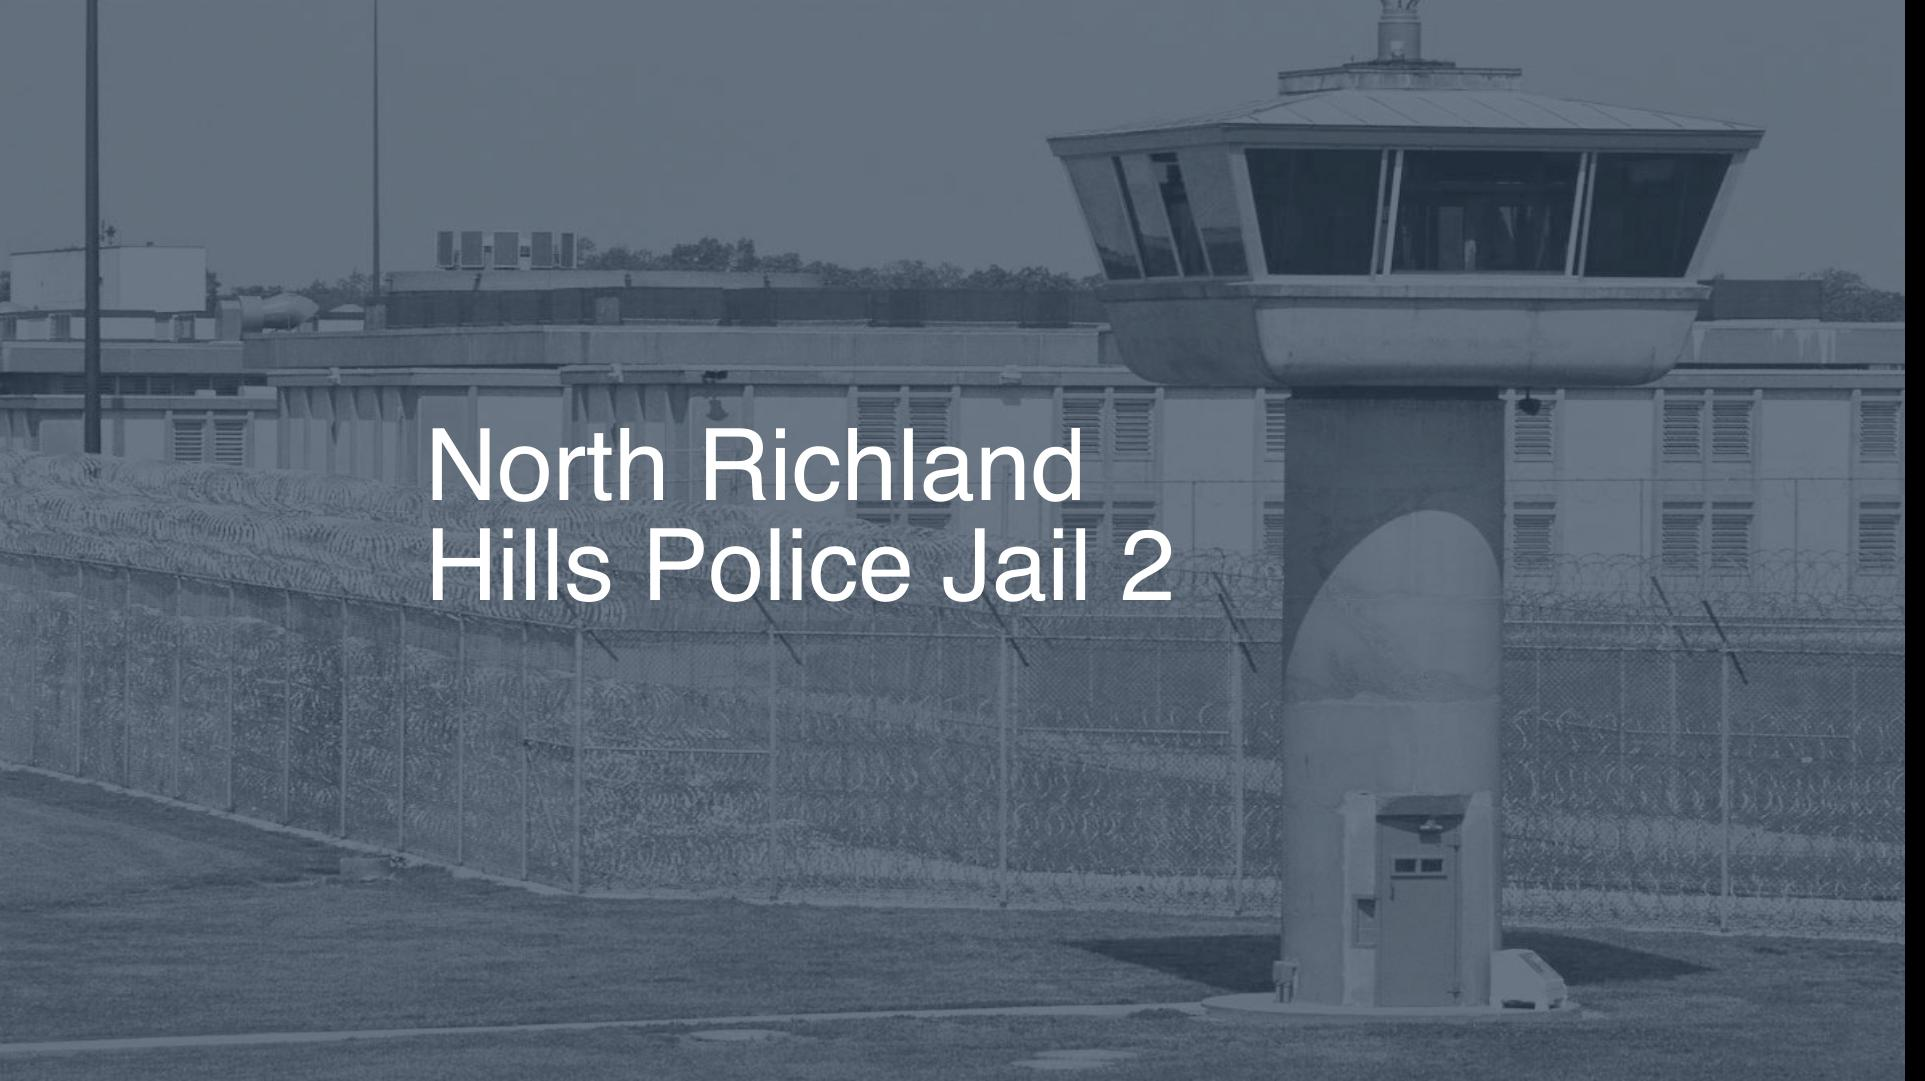 North Richland Hills Police Jail | Pigeonly - Inmate Search